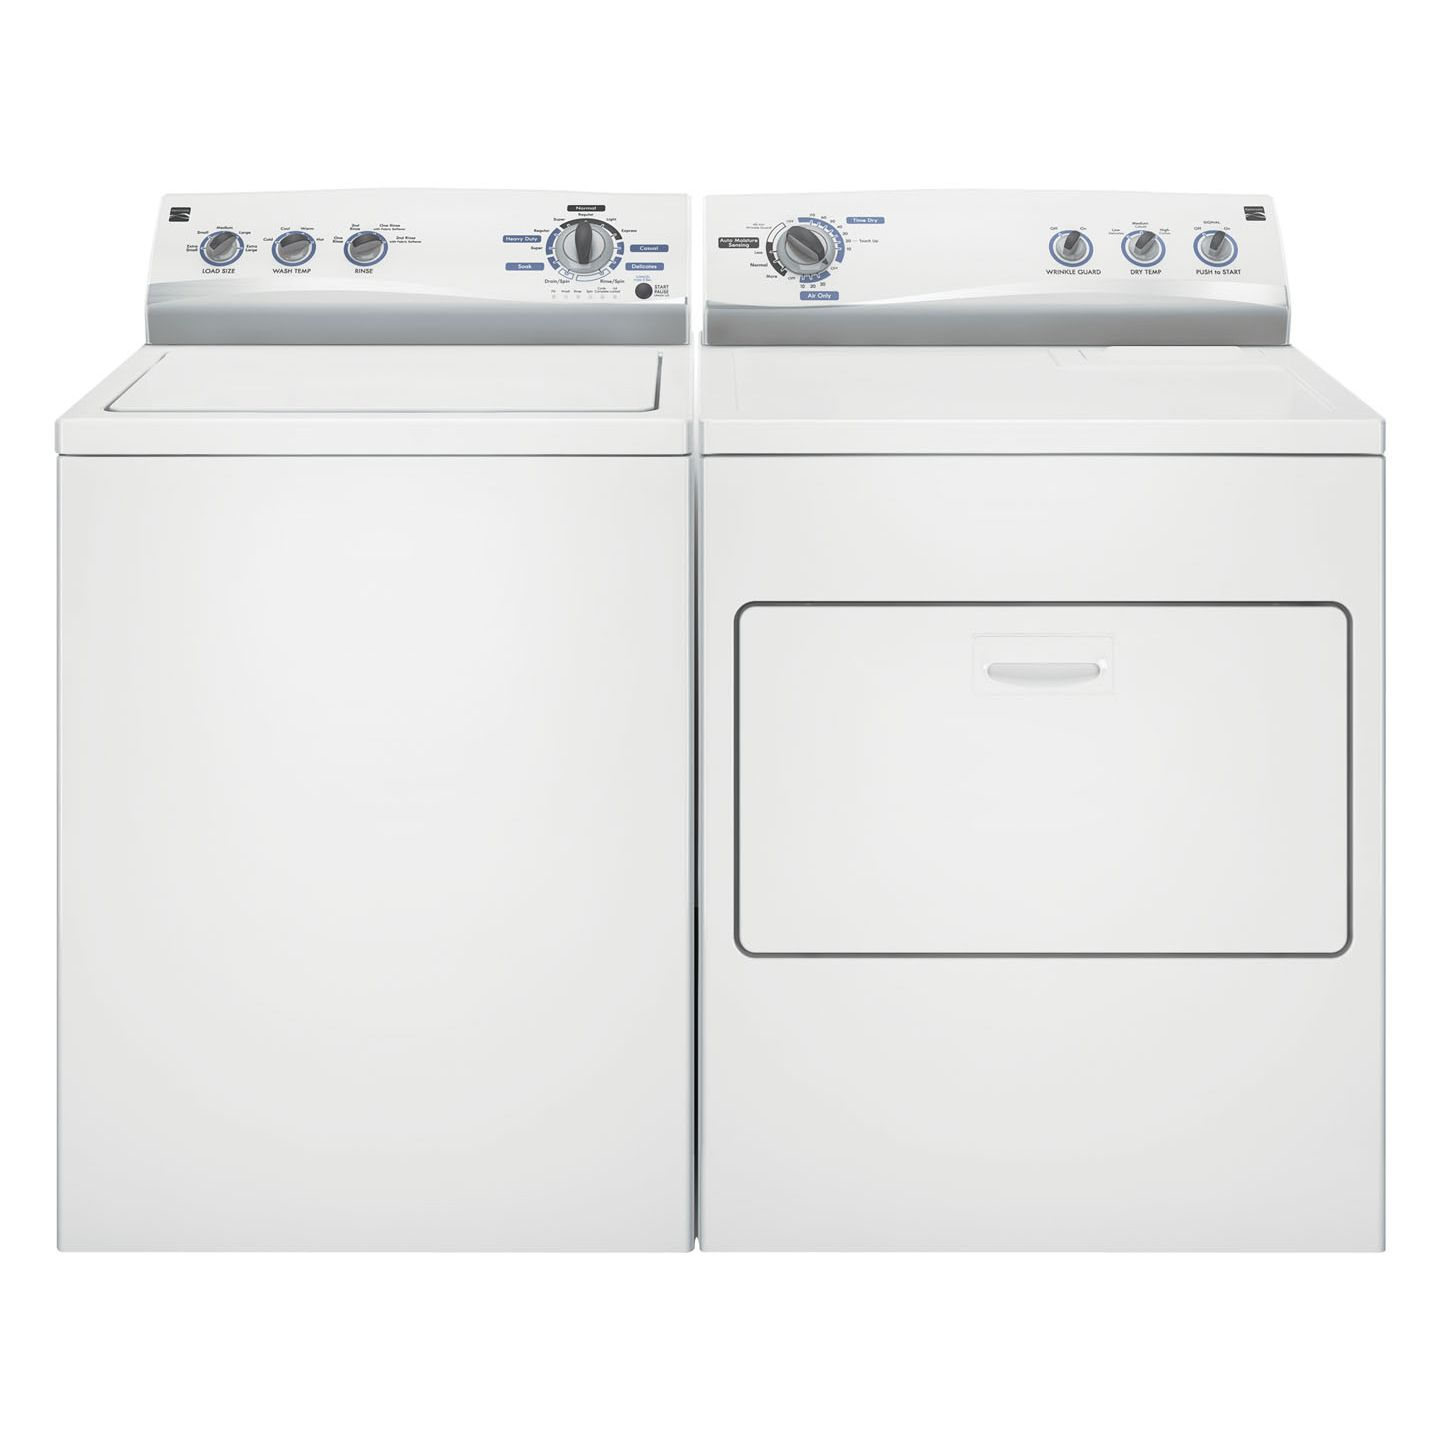 Kenmore 02120 3.4 cu. ft. Top-Load Washer - White